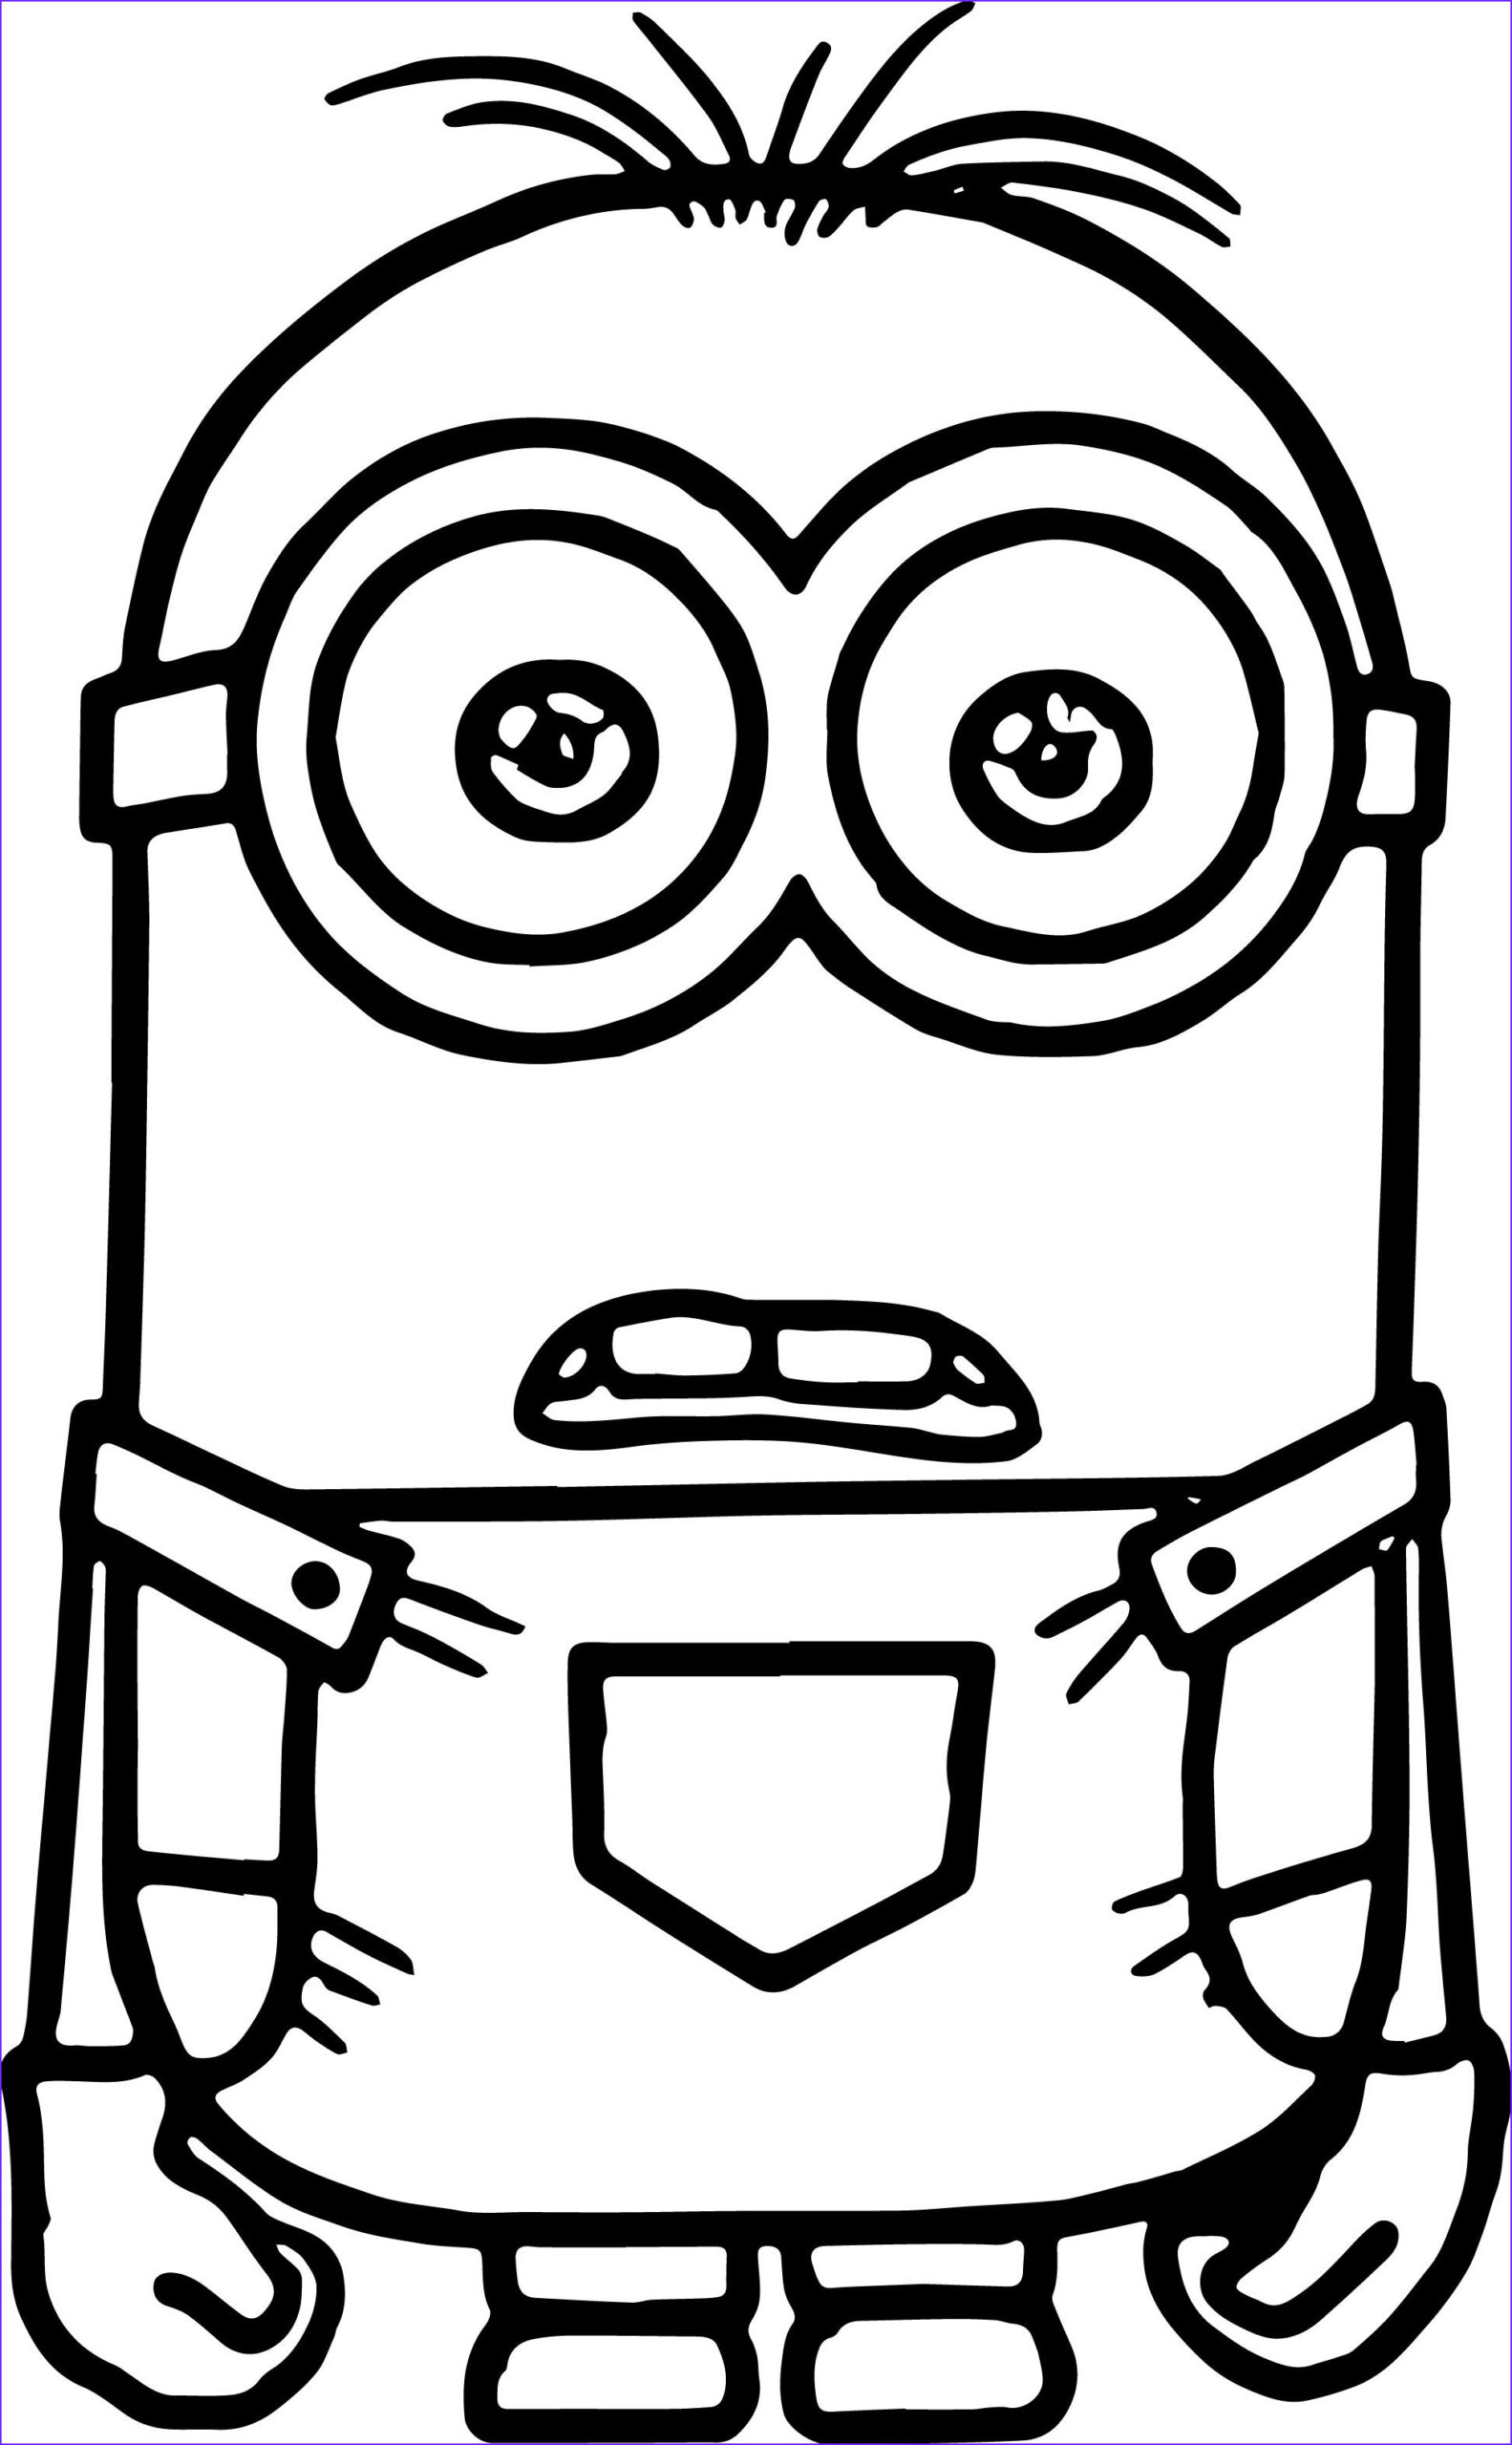 Minion Coloring Sheet Cool Images Minions Coloring Pages Wecoloringpage